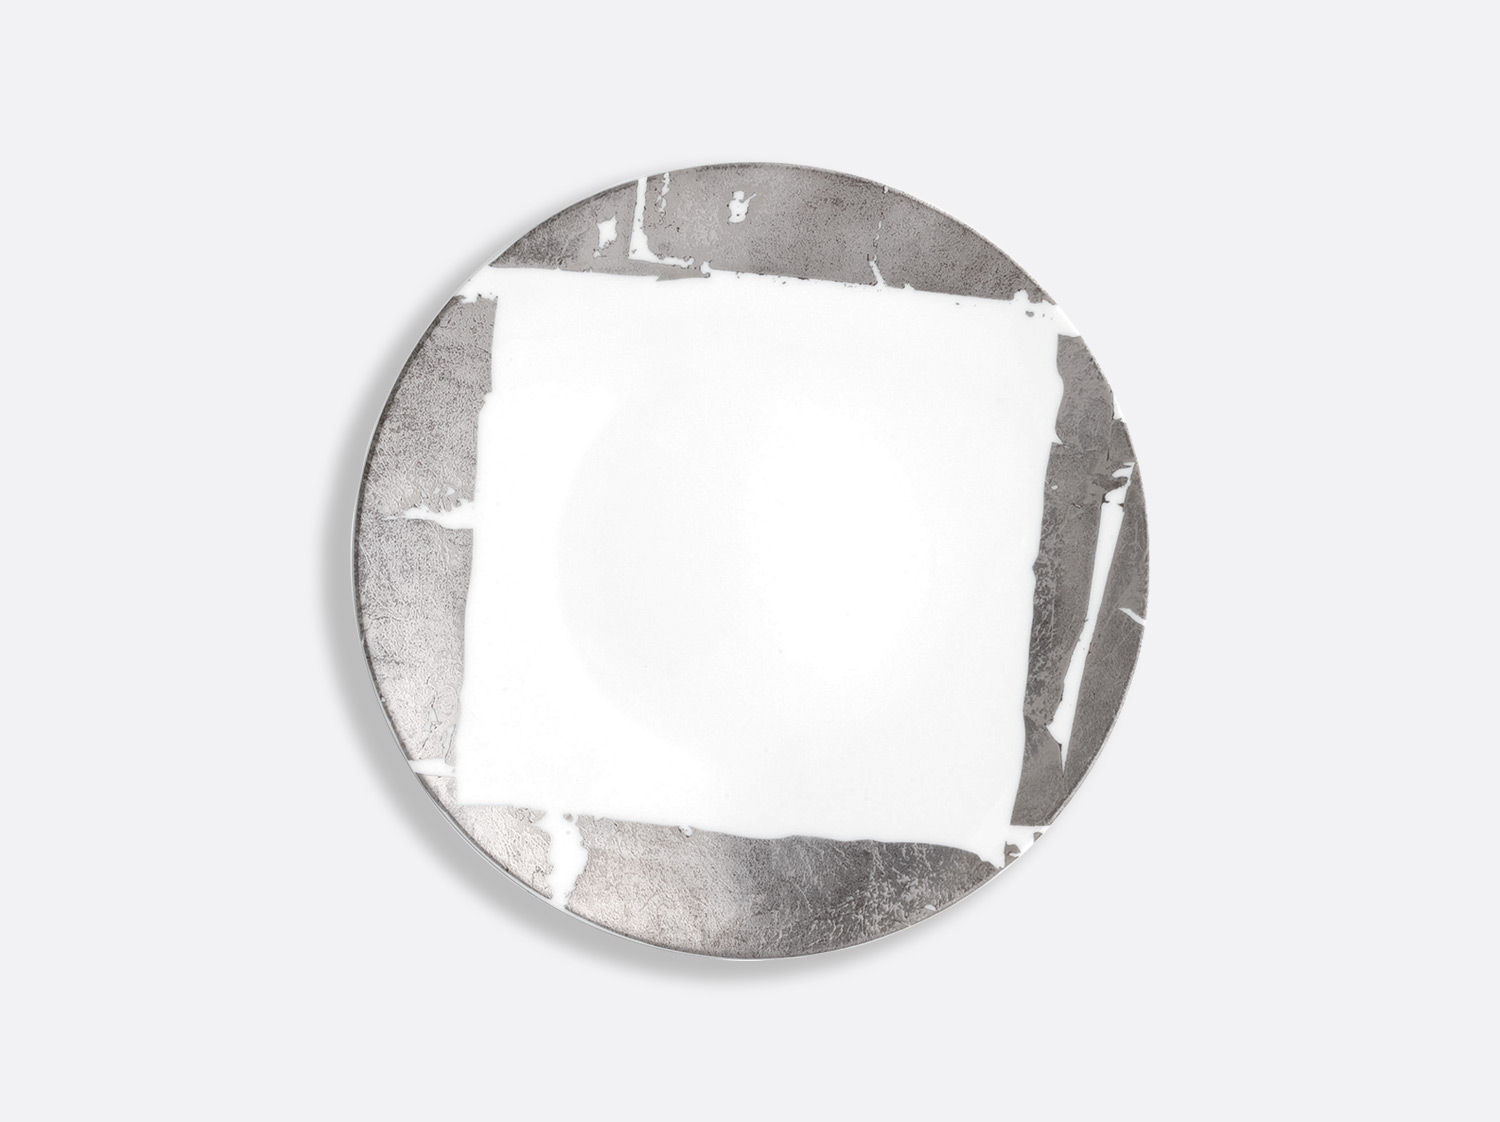 China Coupe plate 21 cm of the collection Silver leaf | Bernardaud